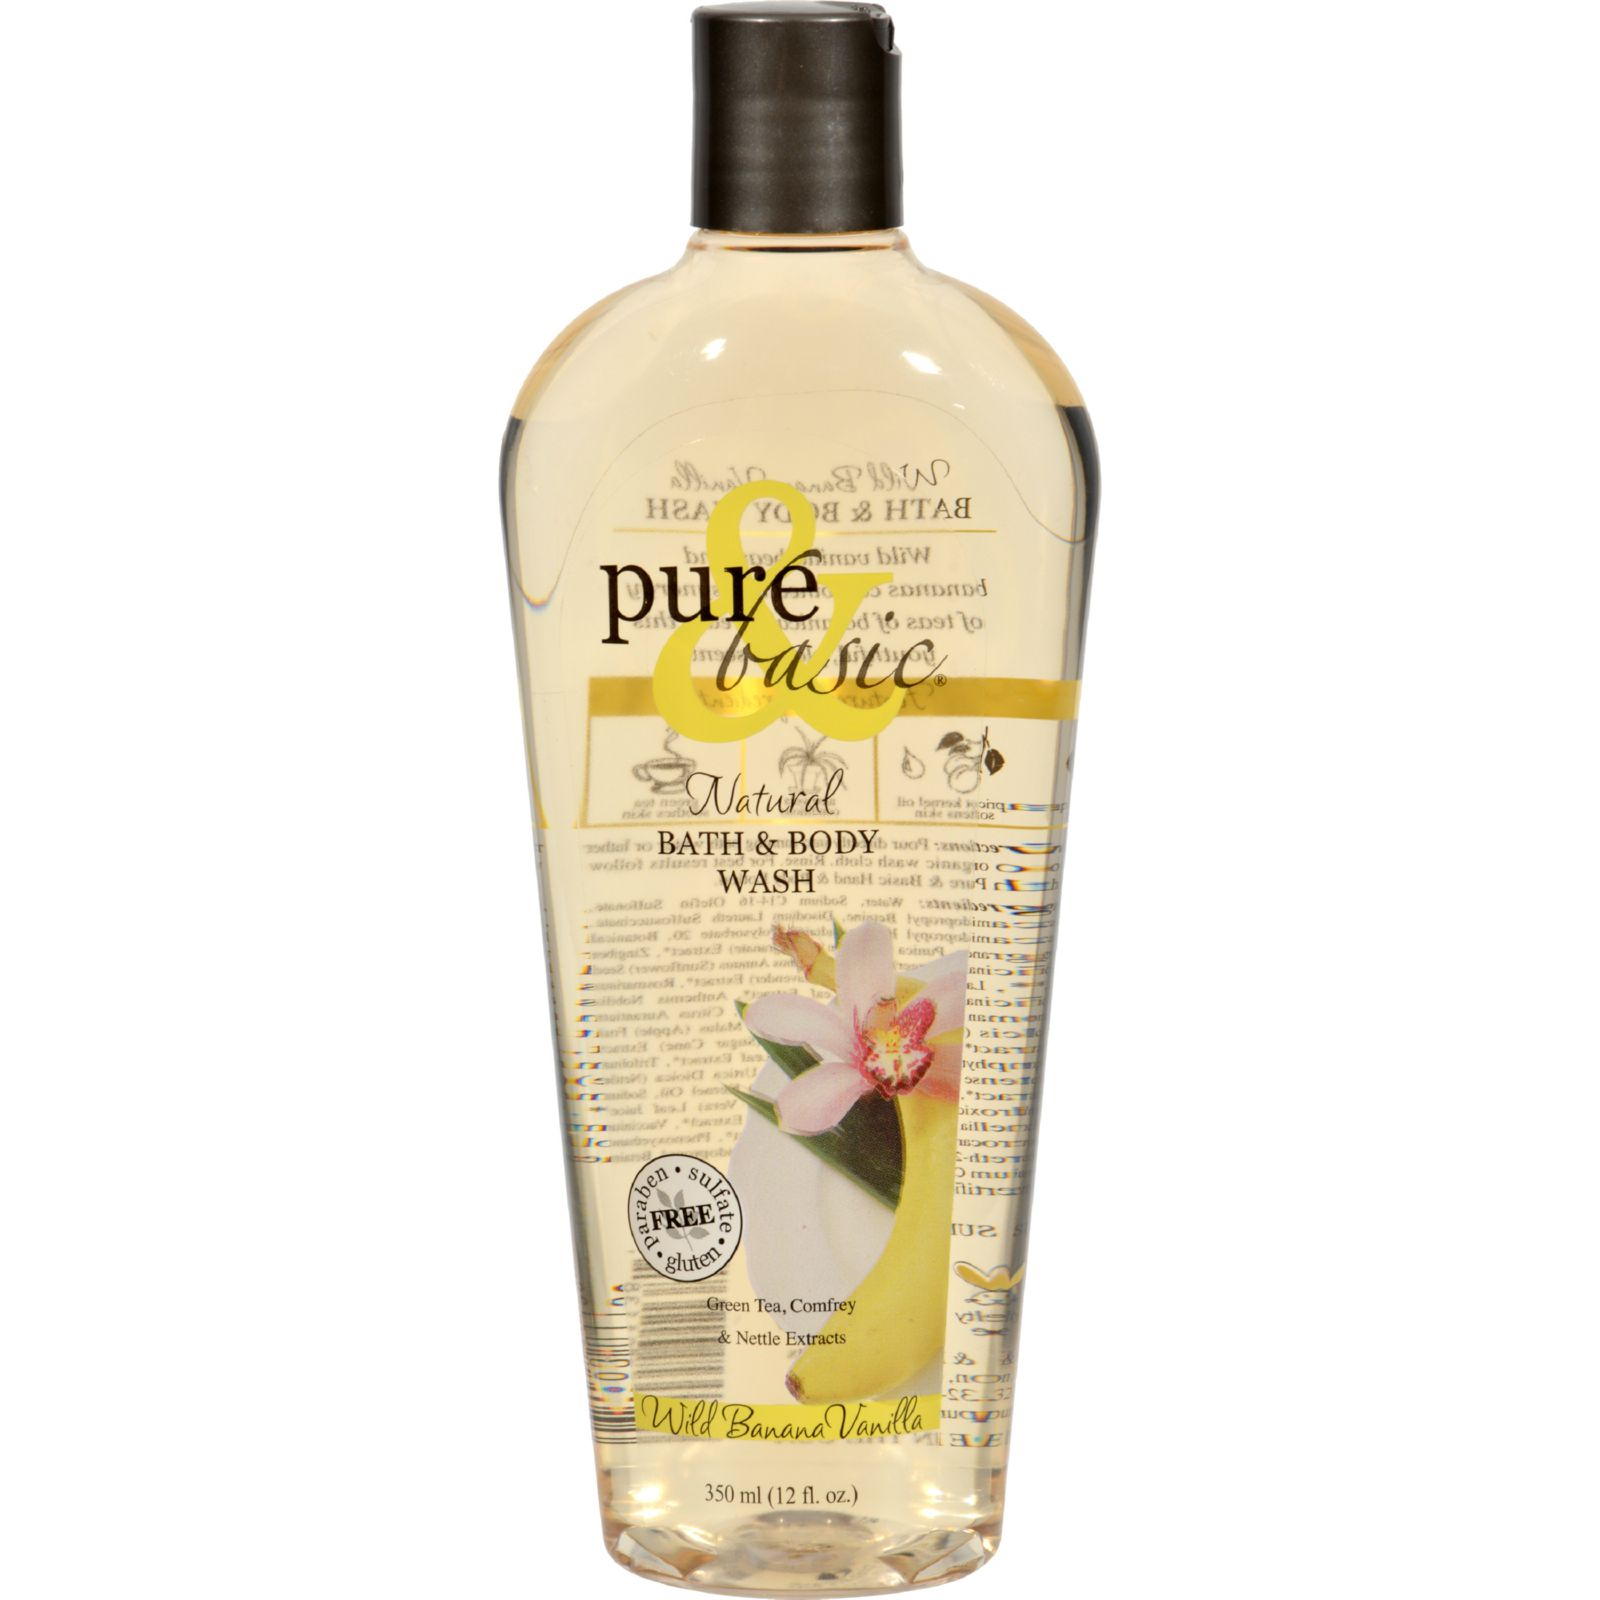 Pure And Basic Natural Bath And Body Wash Wild Banana Vanilla - 12 Fl Oz